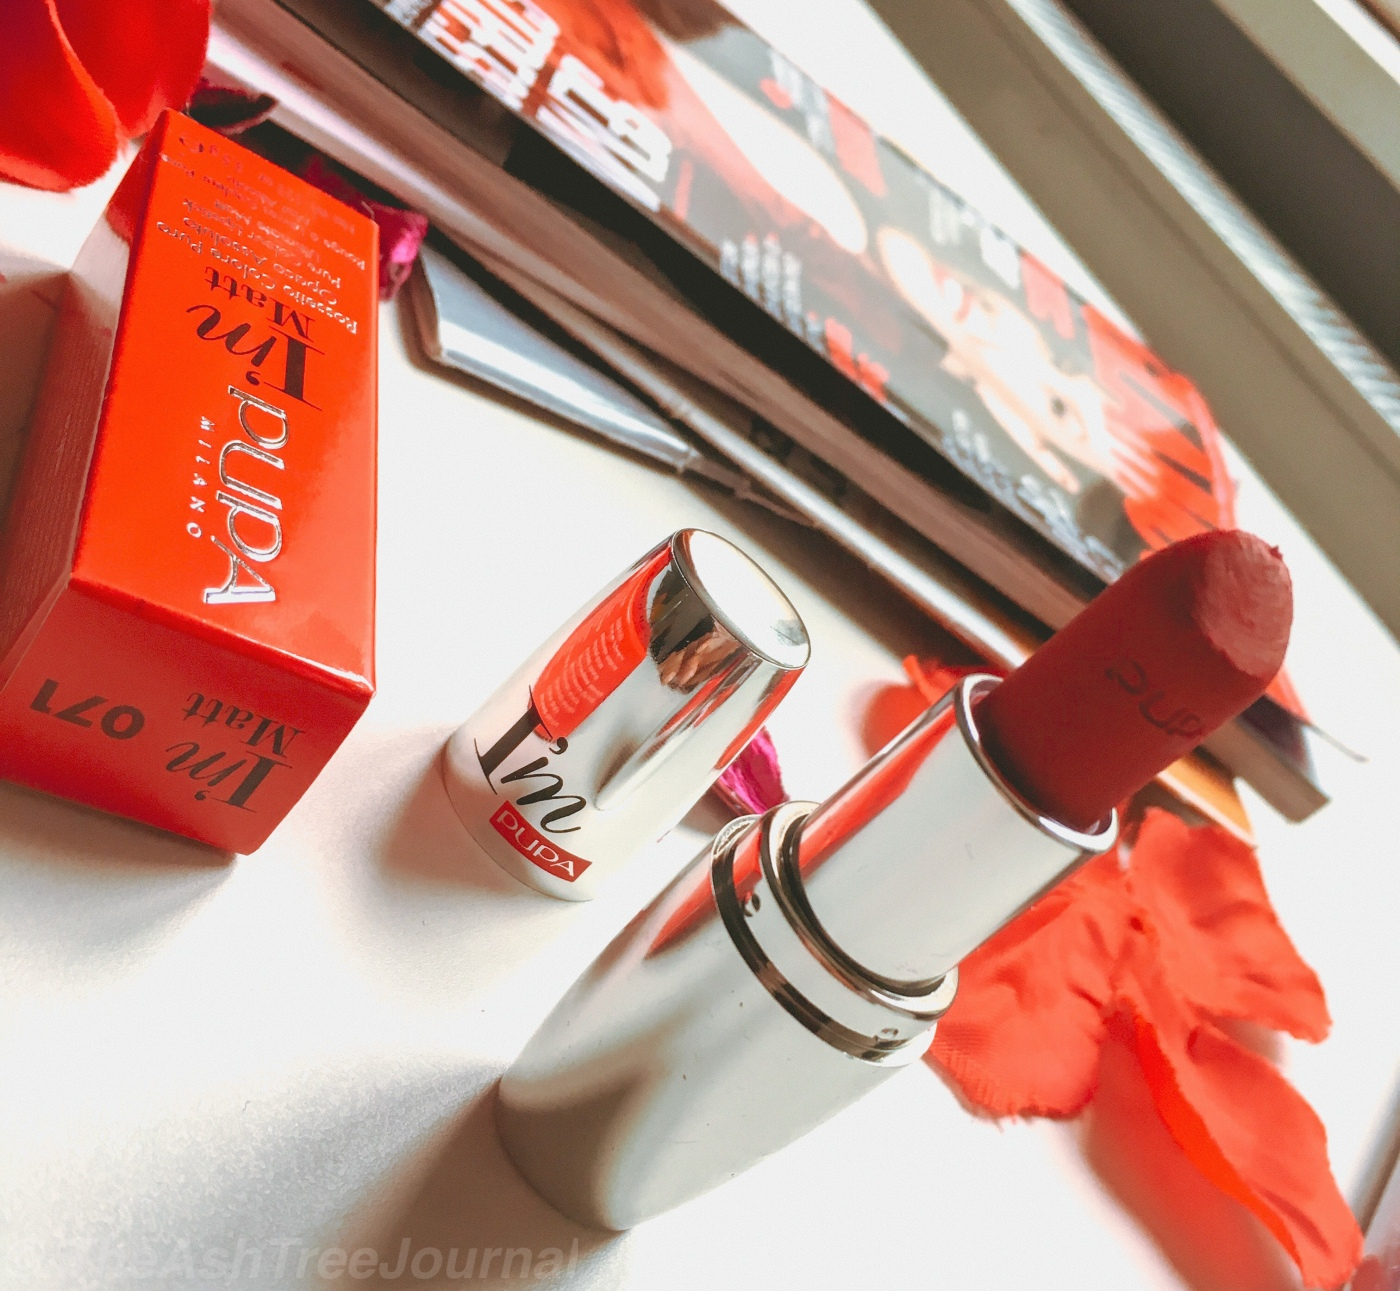 pupa milano lipstick review the ash tree journal